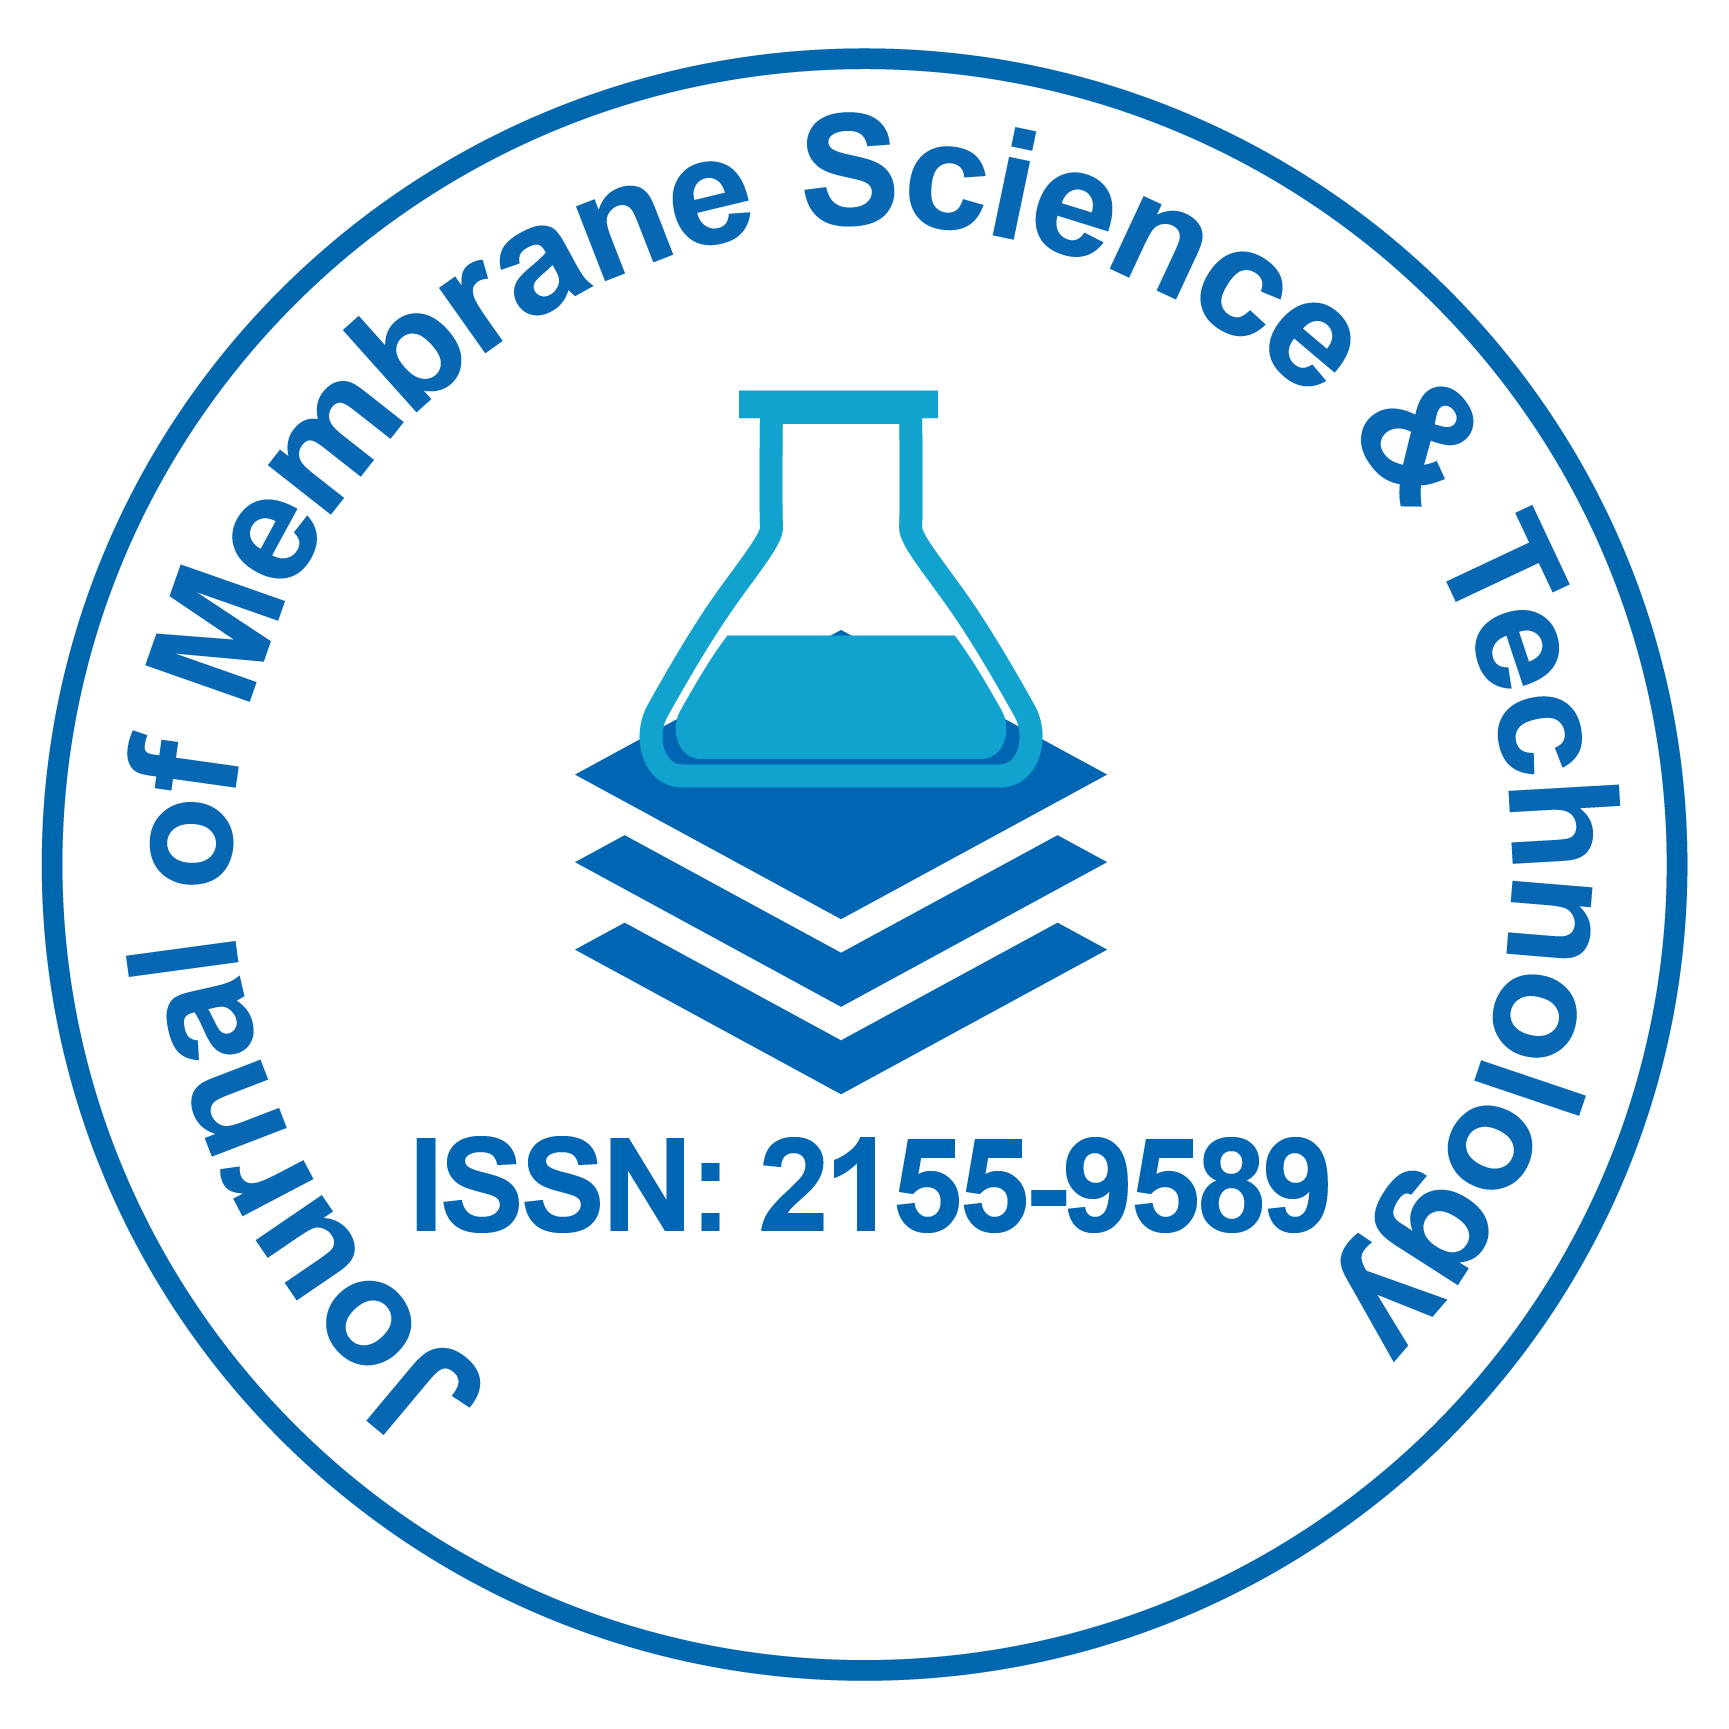 Journal of Membrane Science & Technology